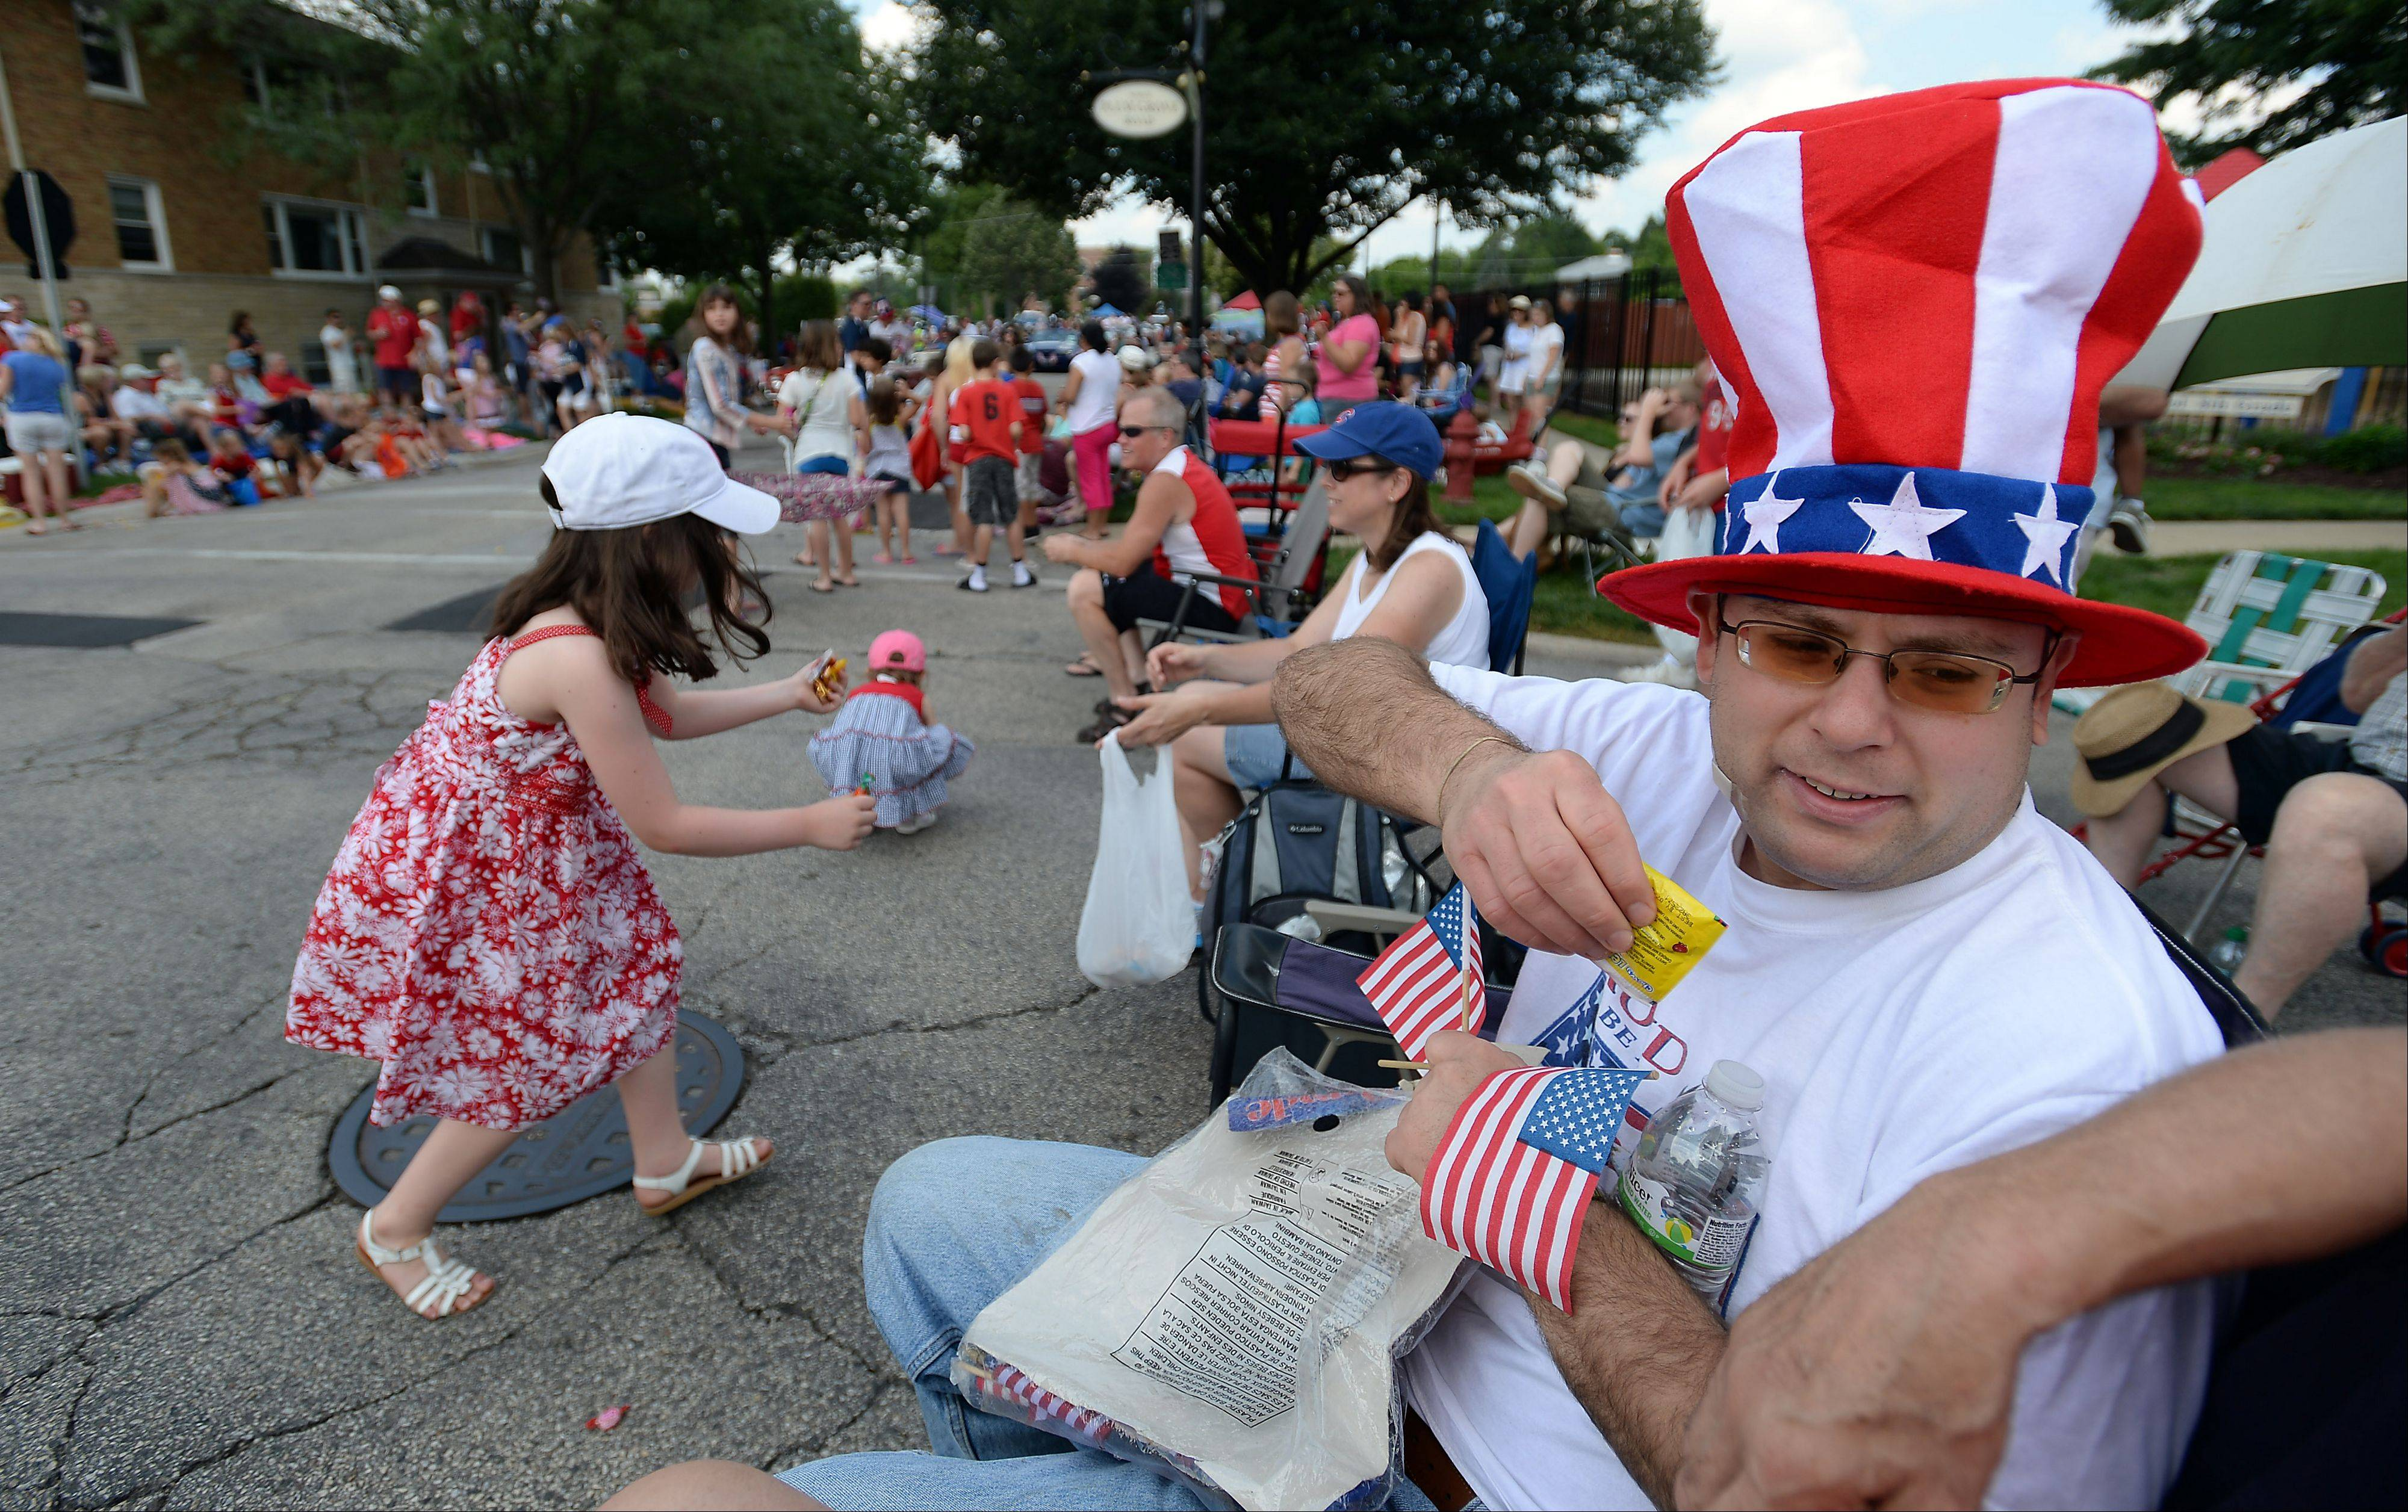 David Wolf of Inverness is happy with his candy supply that he picked up during the Palatine Fourth of July parade on Saturday.